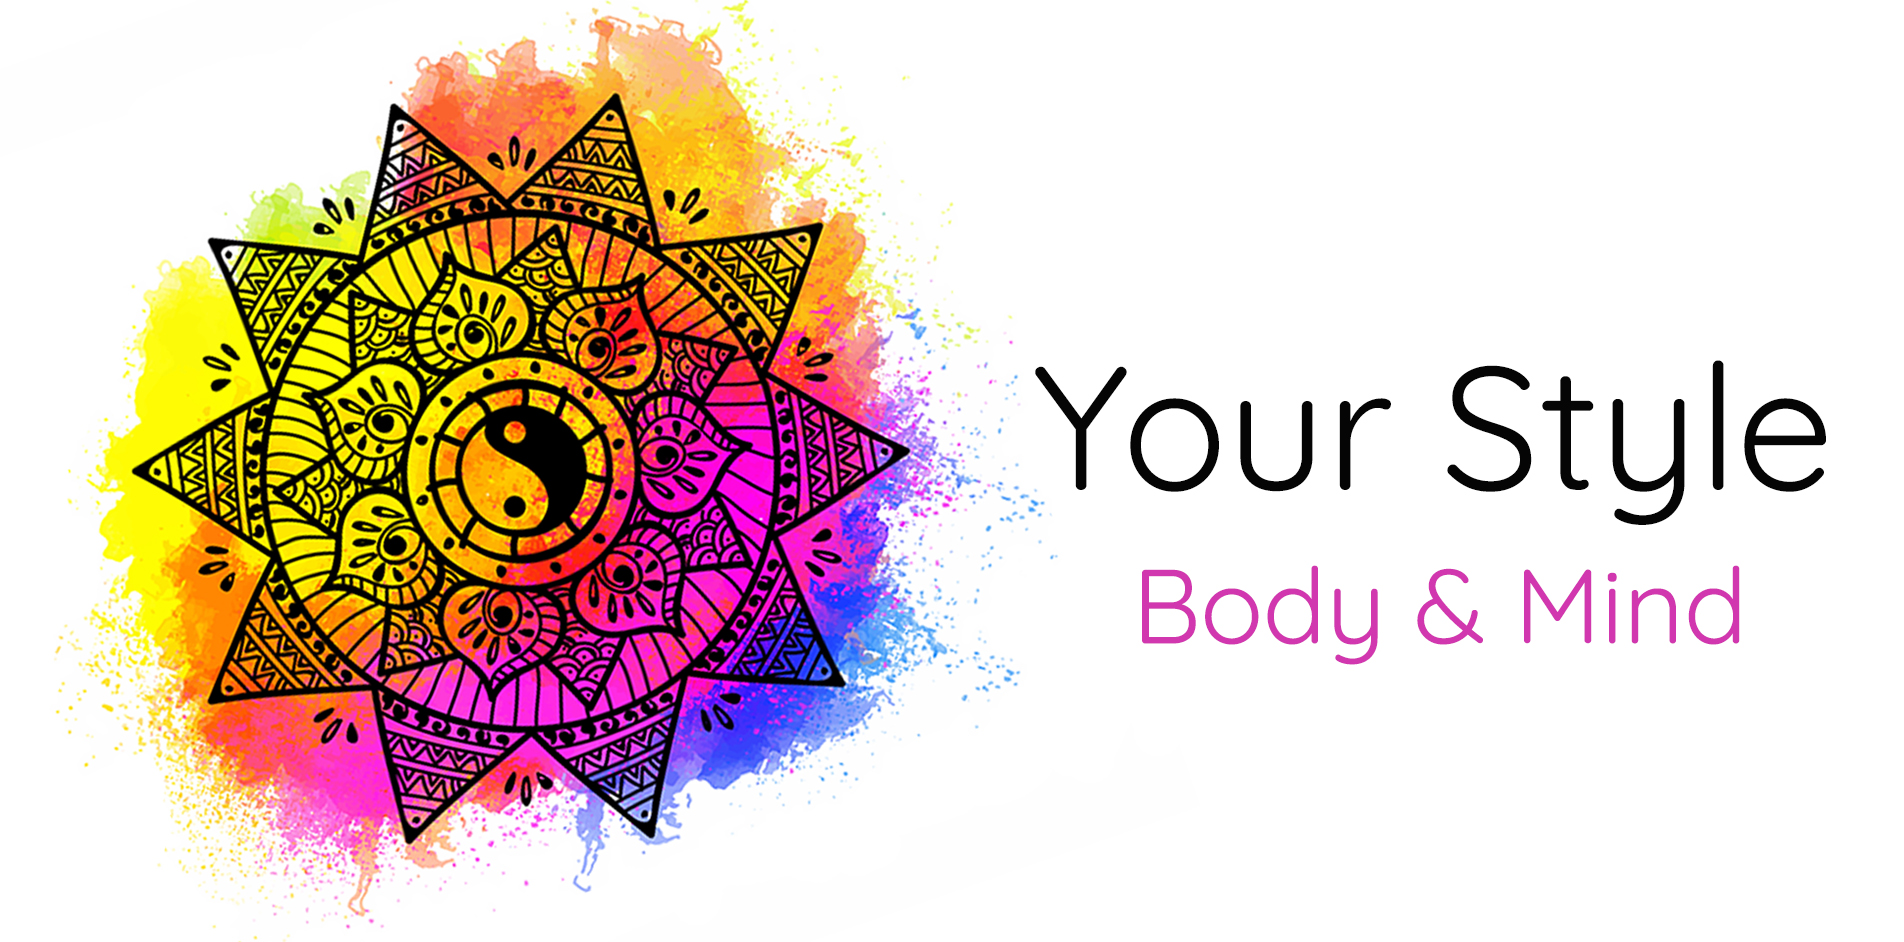 Your Style - Body & Mind